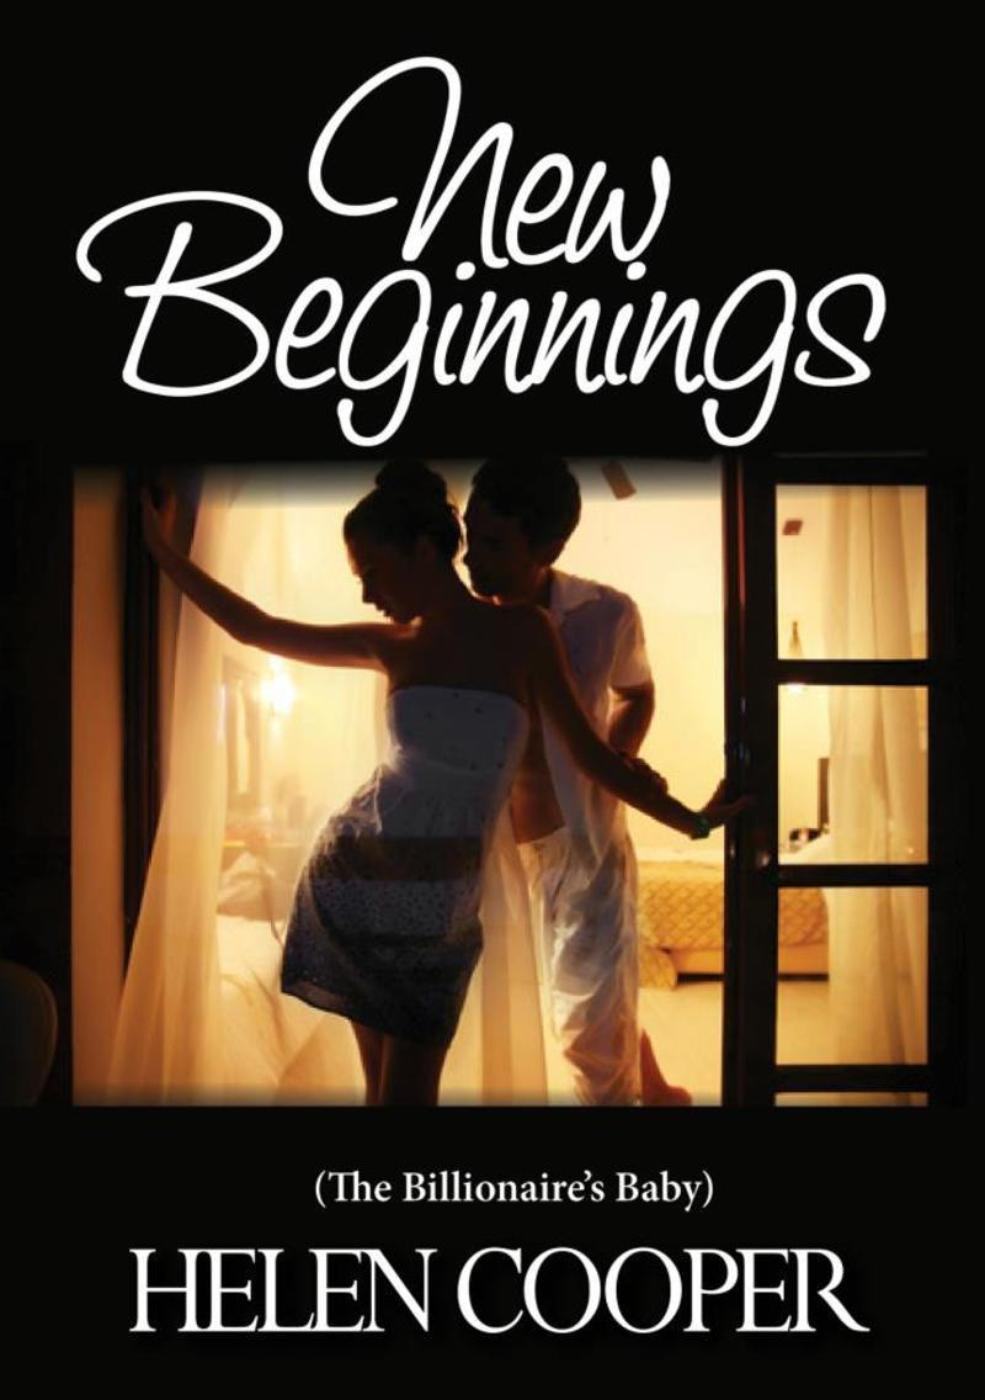 New Beginning's (The Billionaire's Baby)